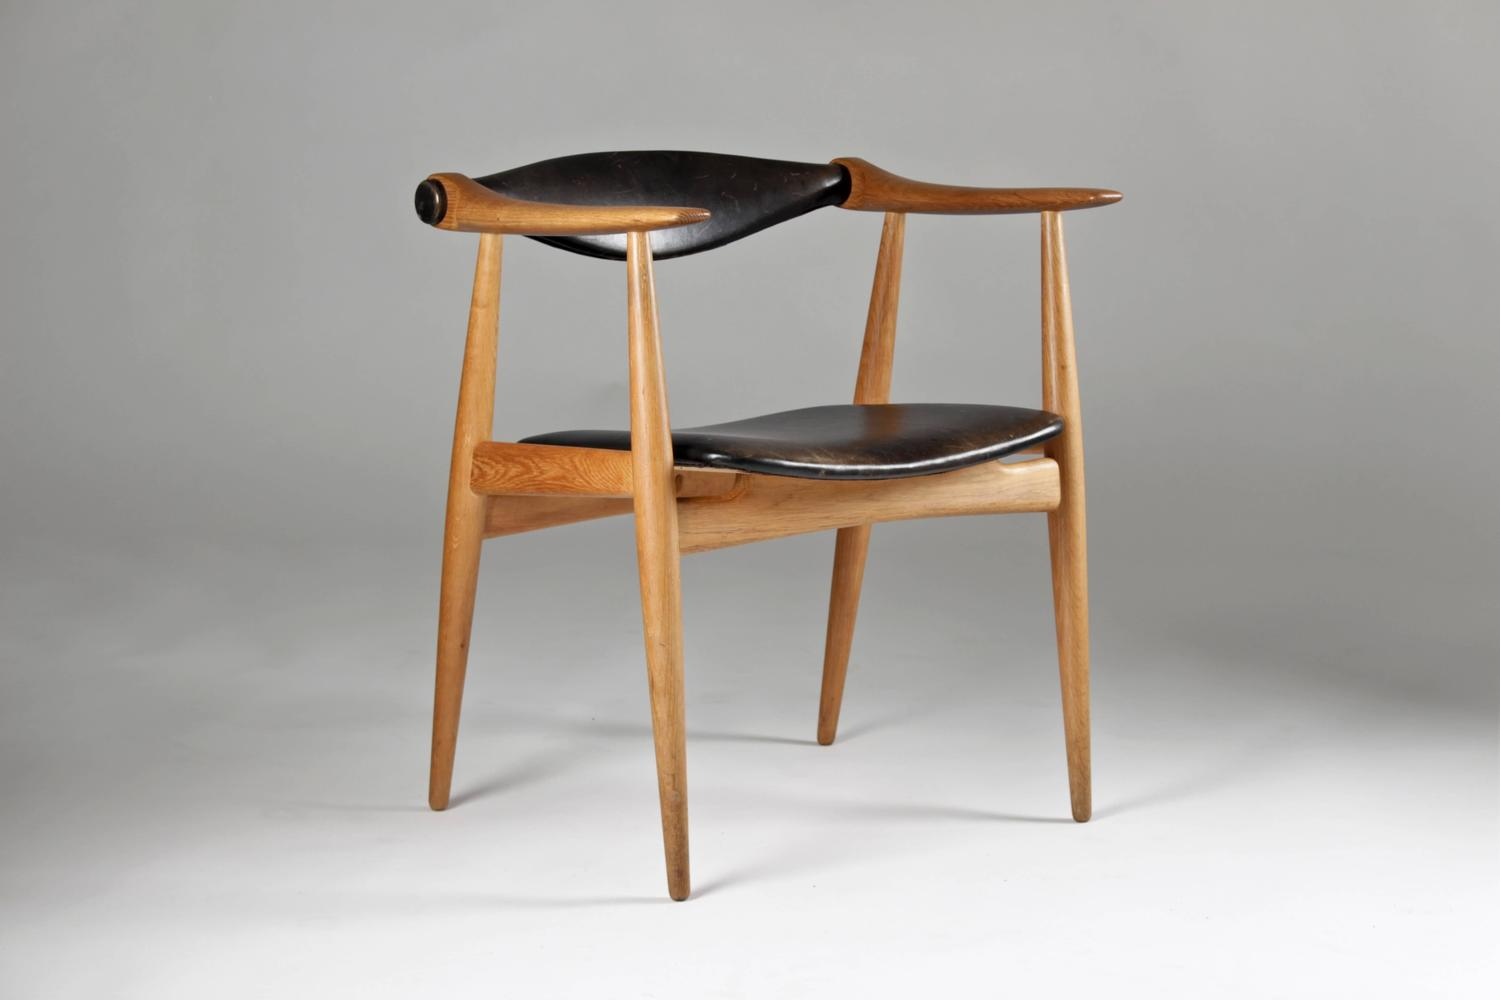 Hans J Wegner Ch 34 Armchair In Oak And Leather At 1stdibs